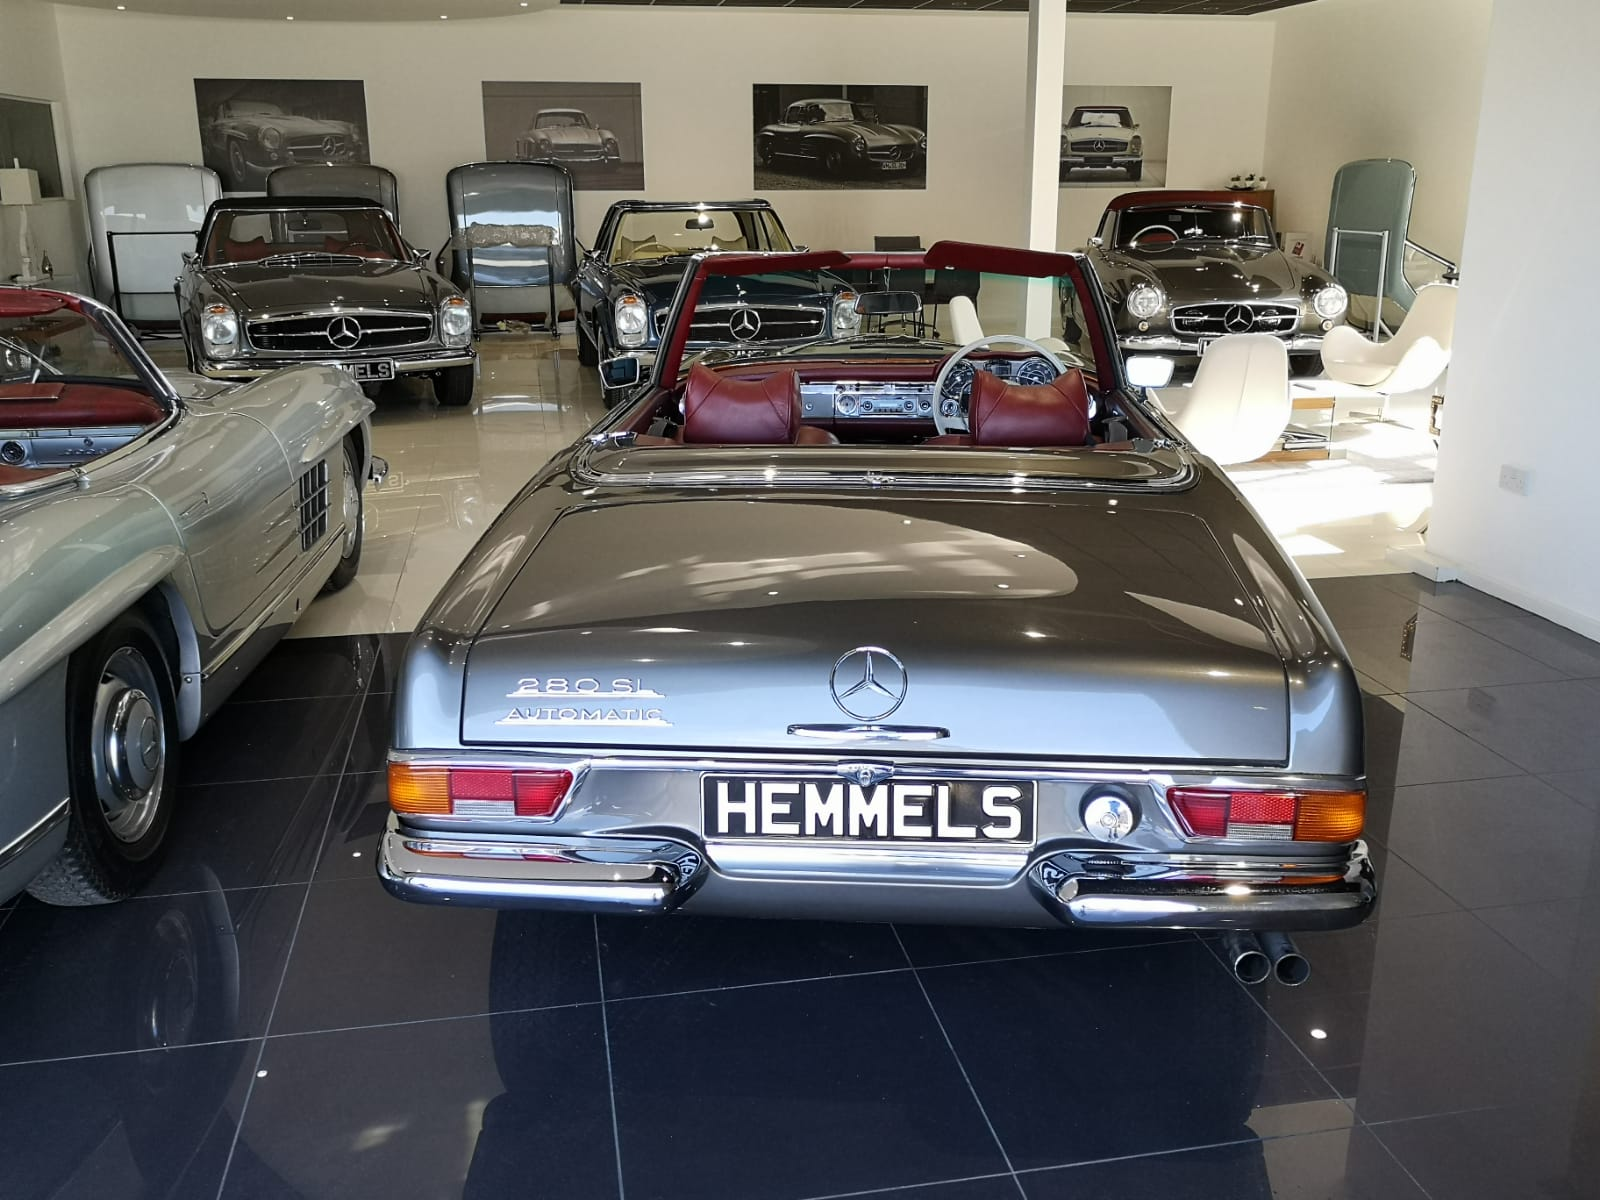 Hemmels W121 190SL in the Showroom